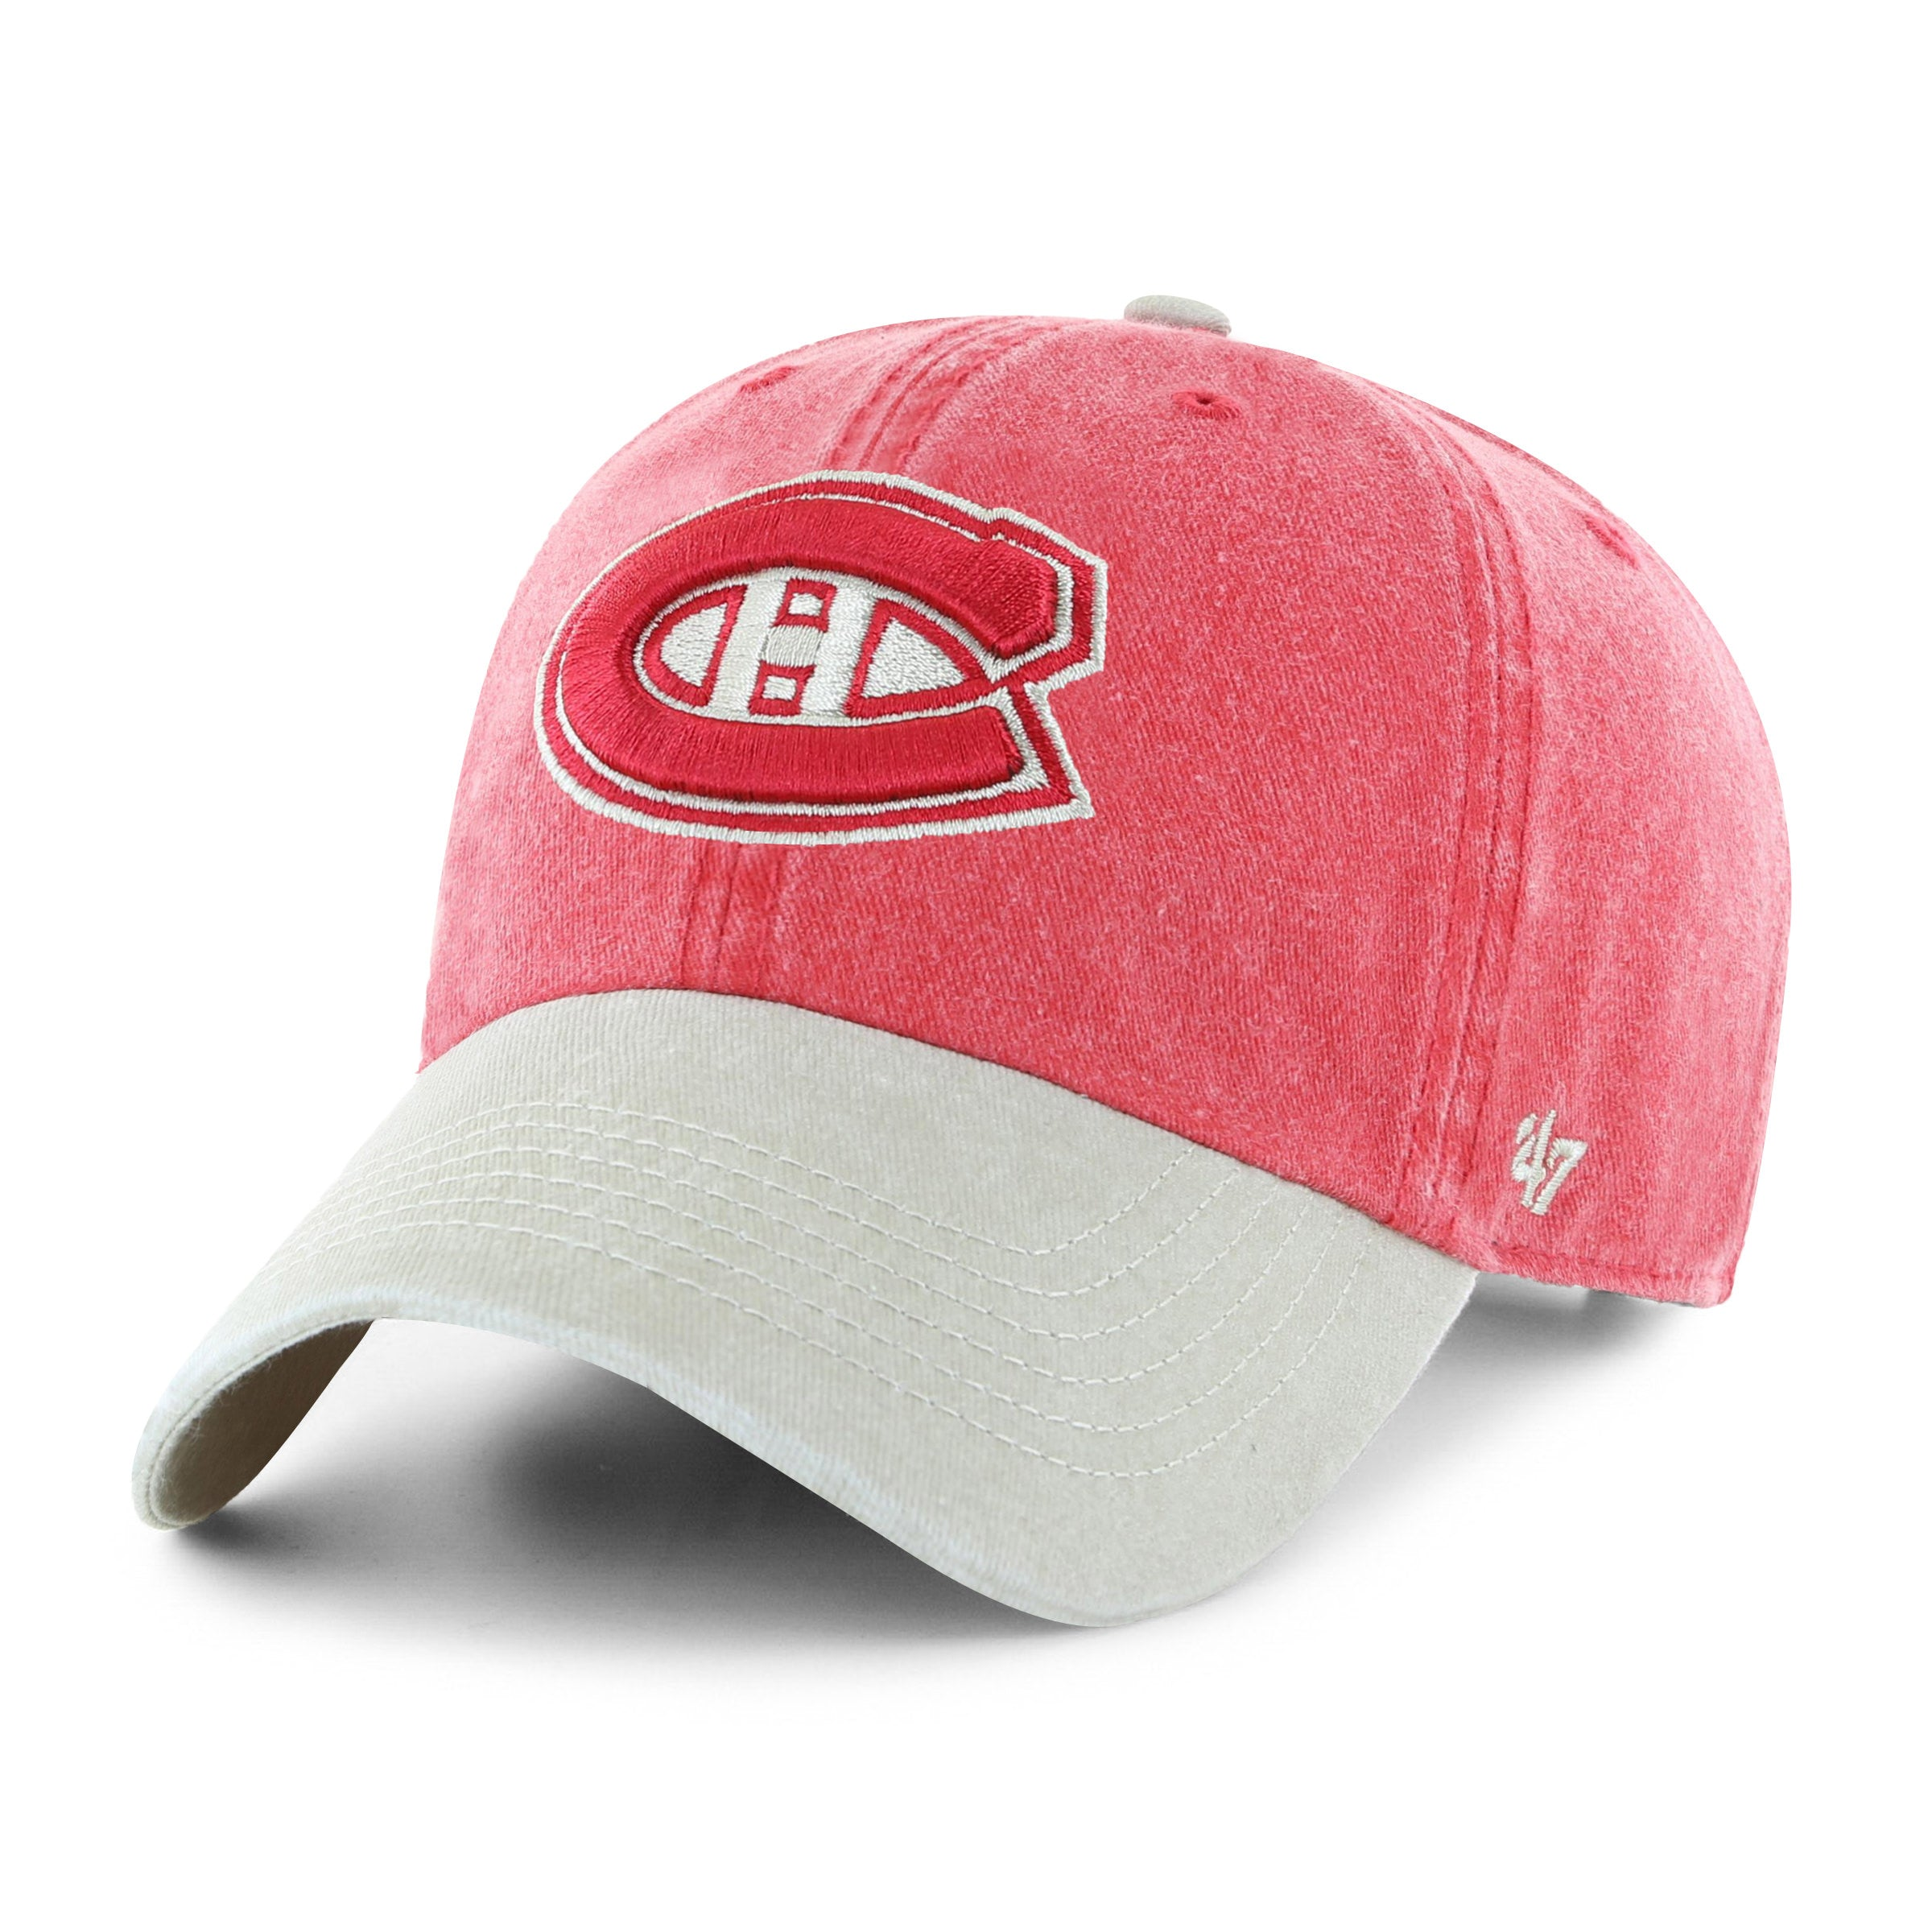 on sale 51d7d bb3e2 order montreal canadiens 2018 nhl draft structured flex cap 55a8e a9786   cheap nhl montreal canadiens summerland two tone clean up cap 3c794 c081a